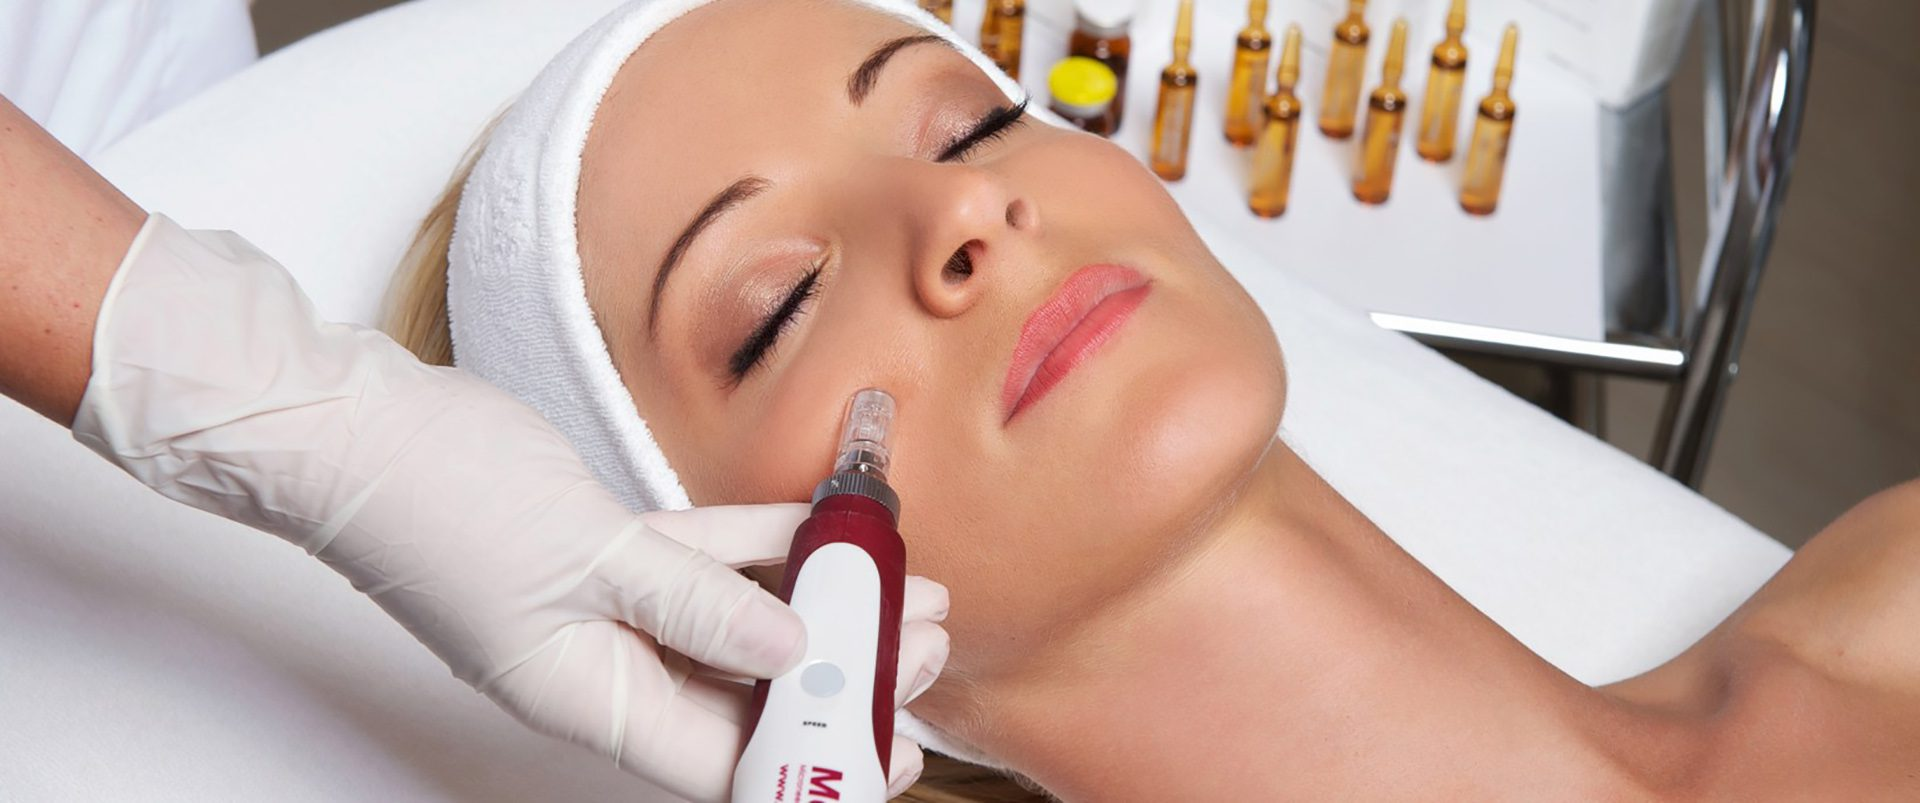 Mesotherapy microneedle